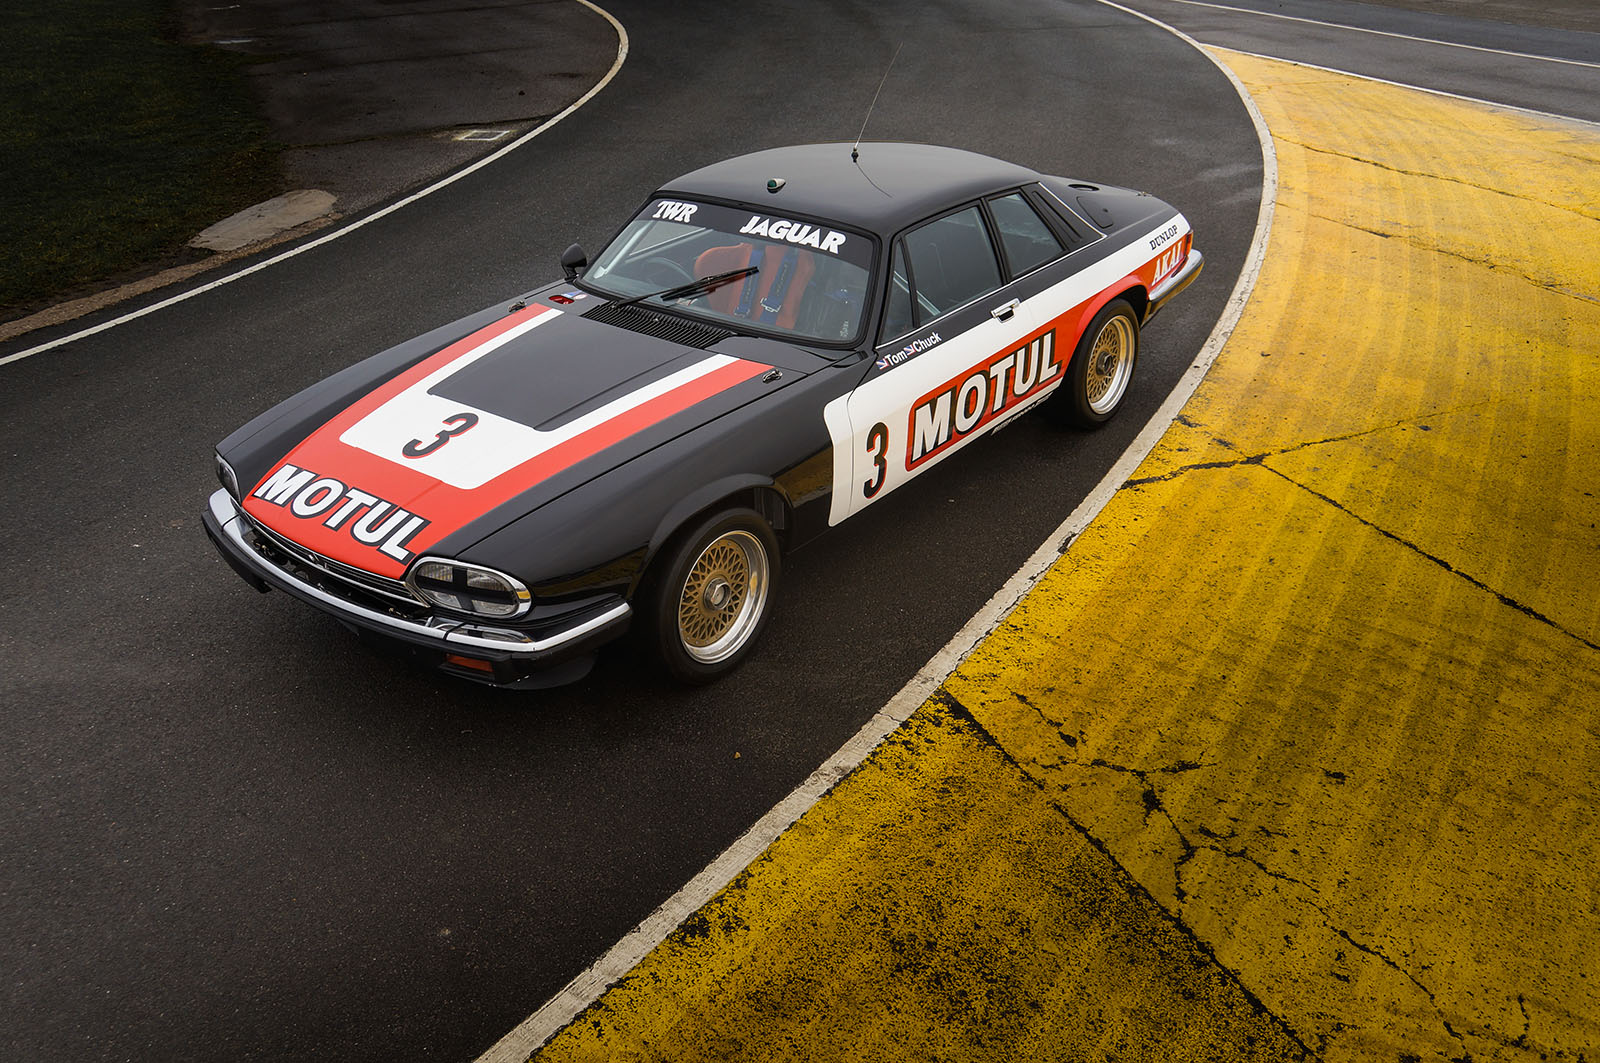 jaguar_twr_xjs_walkinshaw_wilkinson_sayer_selection_left_top.jpg